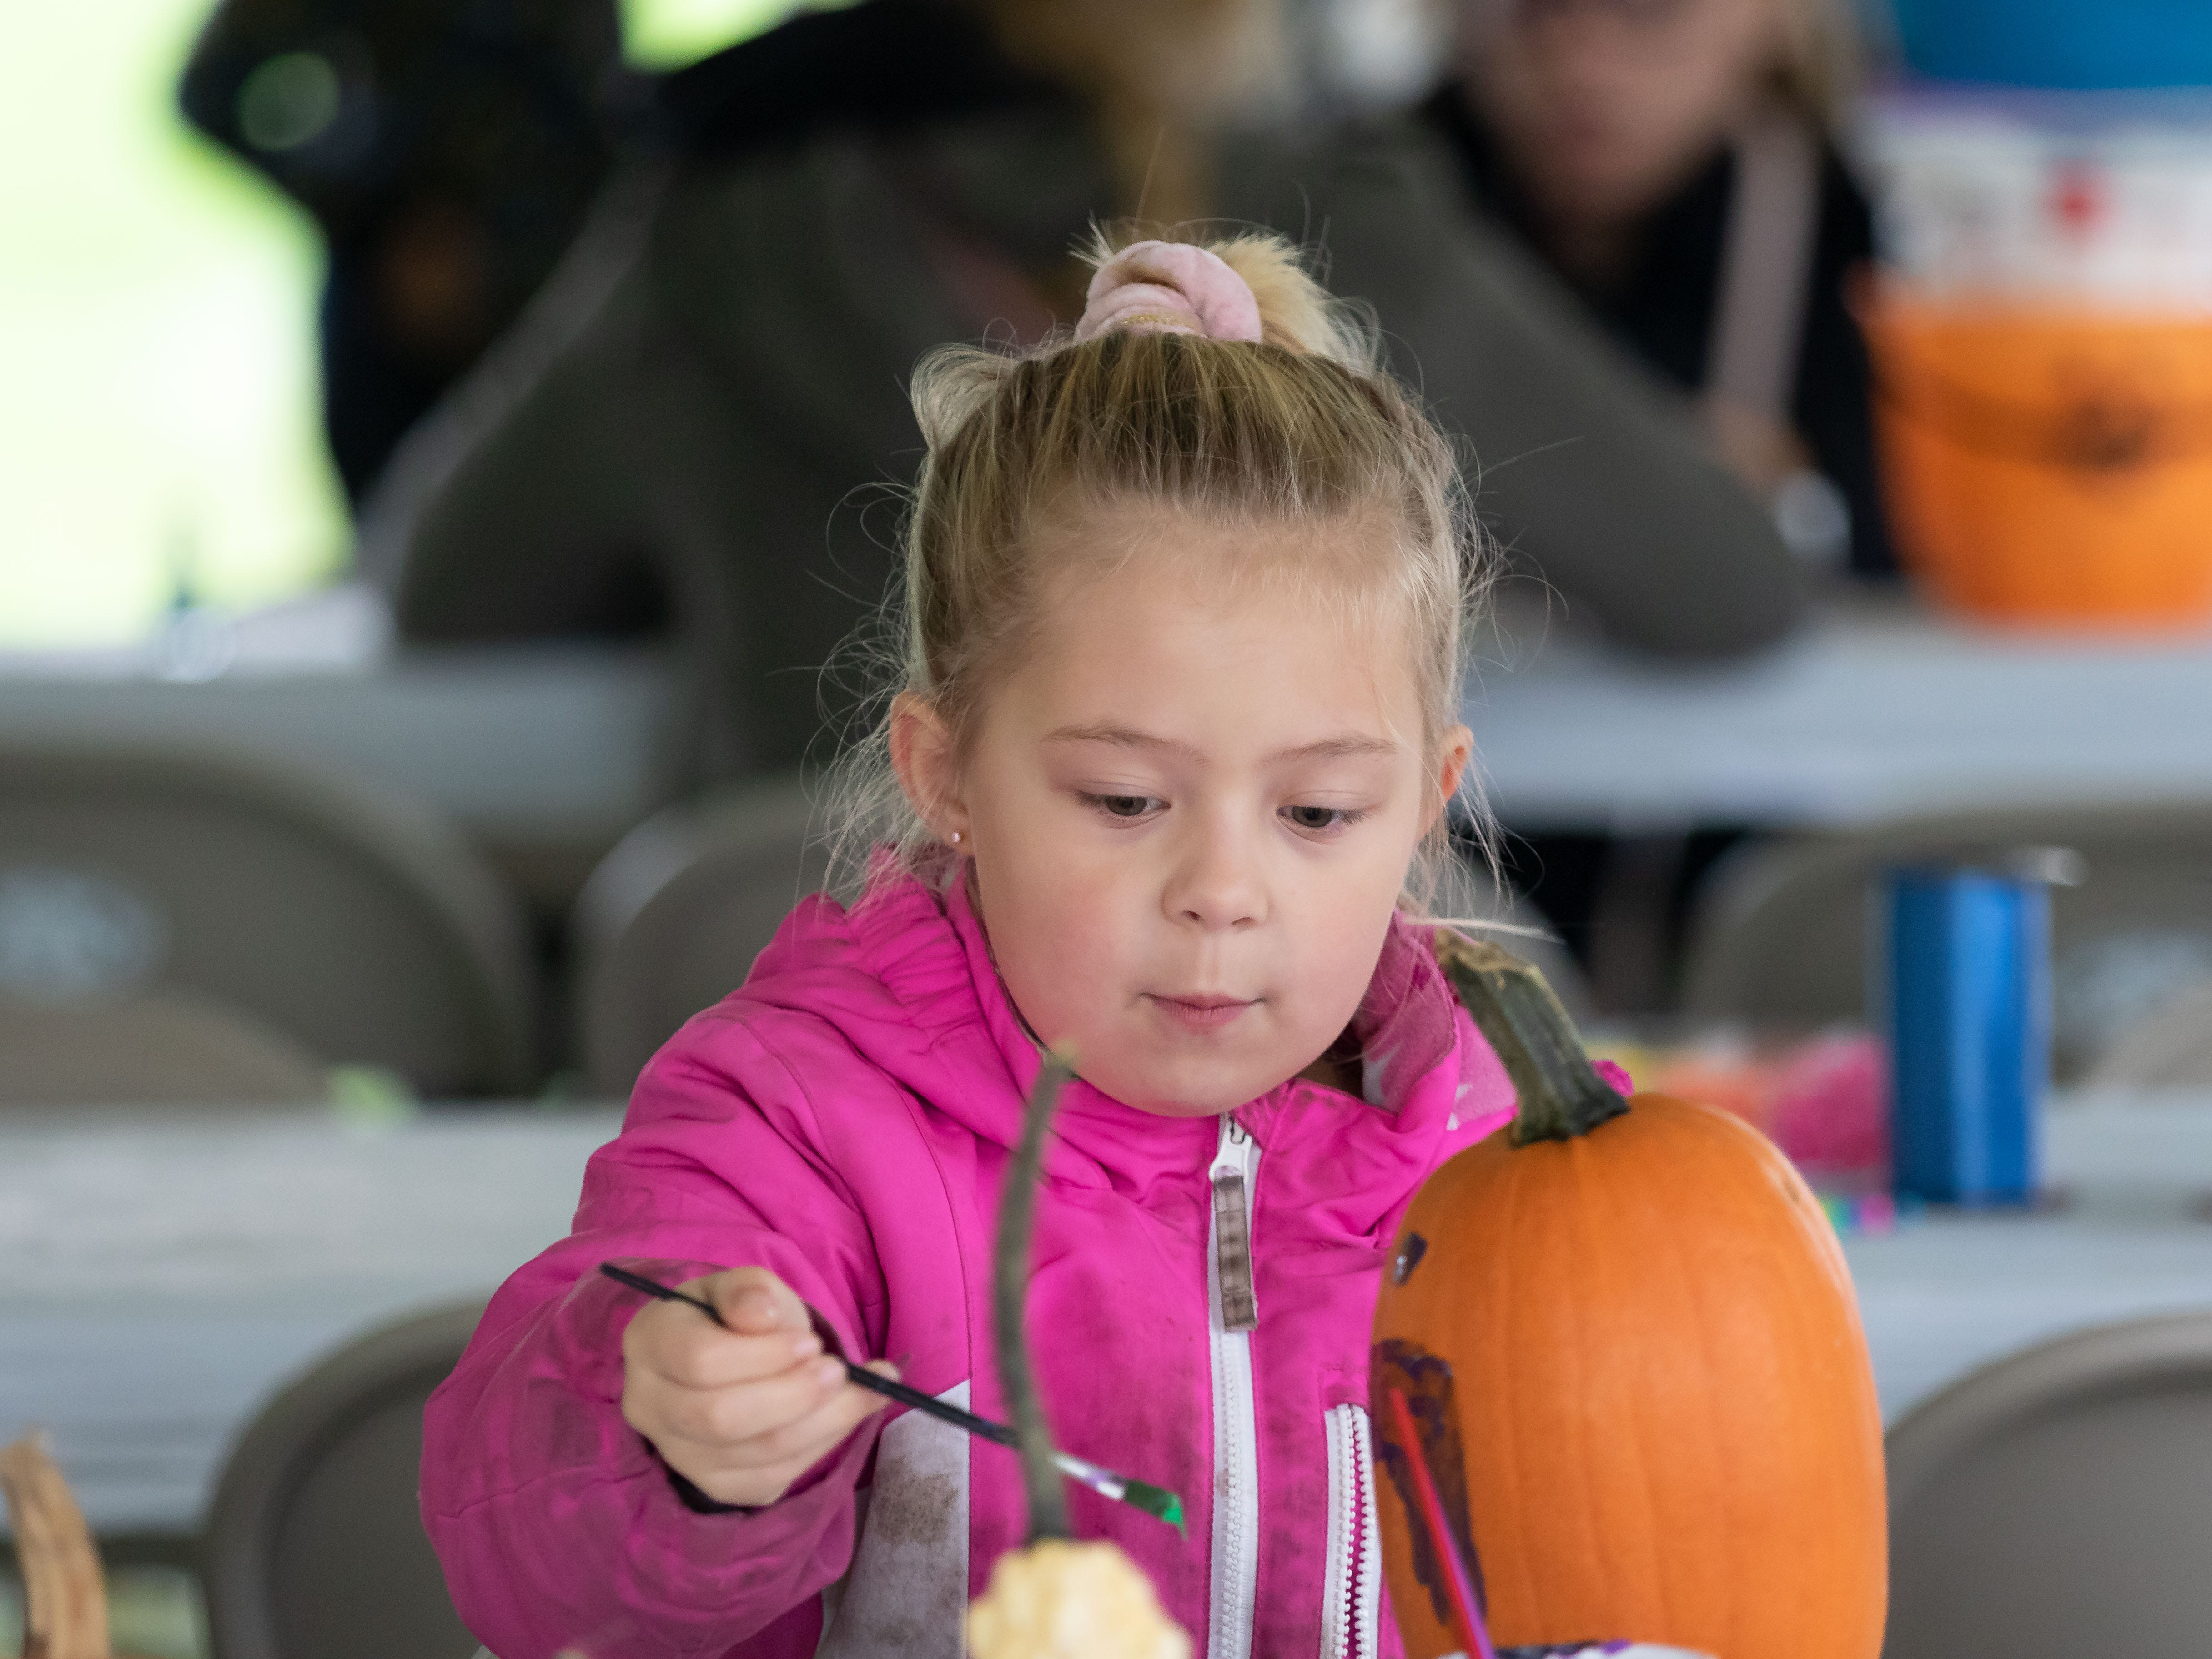 The 21st annual Nekoosa Giant Pumpkin Fest was held Saturday, Oct. 6, 2018, and Sunday, Oct. 7, 2018, at Riverside Park in Nekoosa.